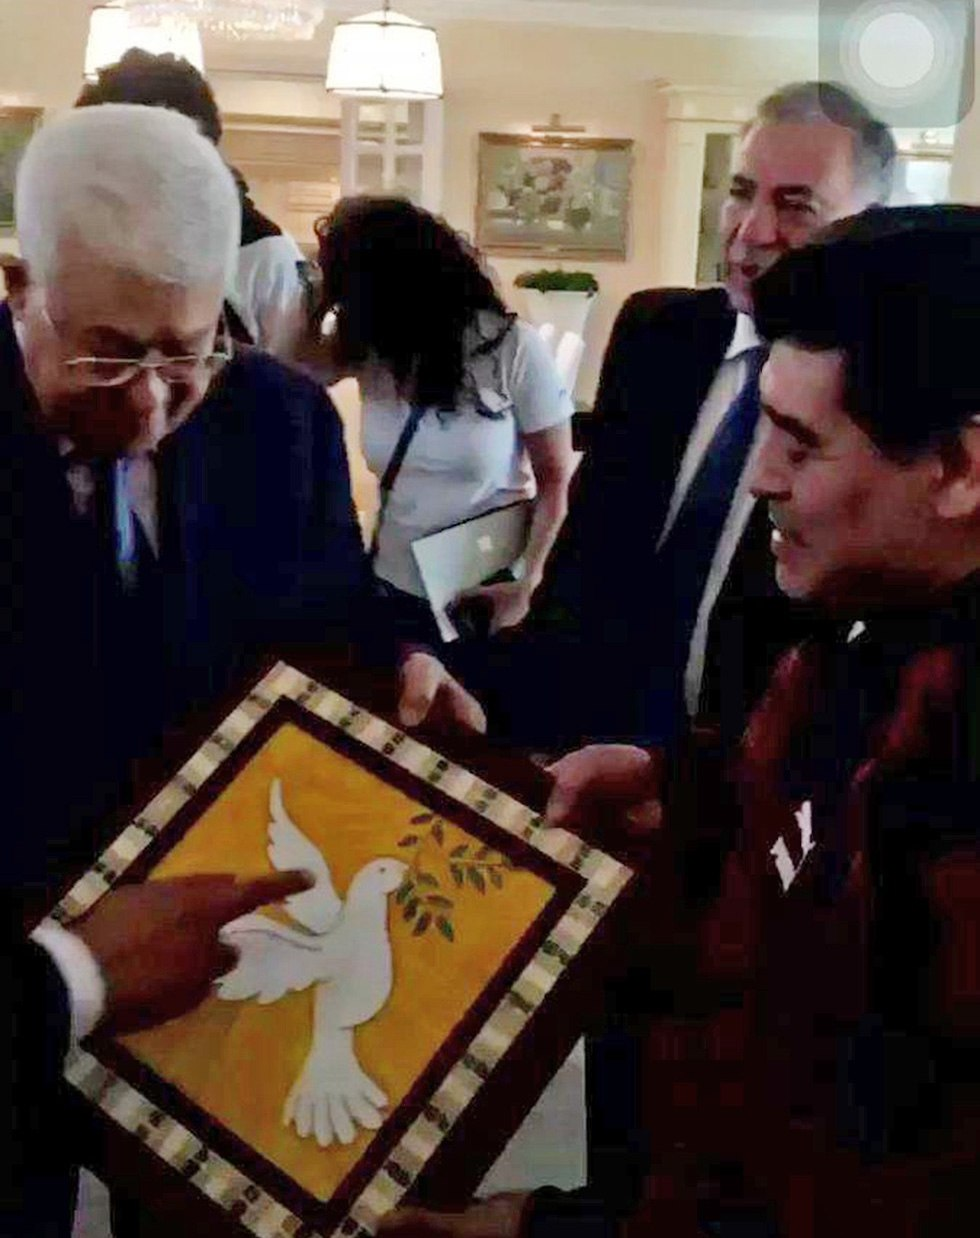 Maradona presented with painting by President Abbas